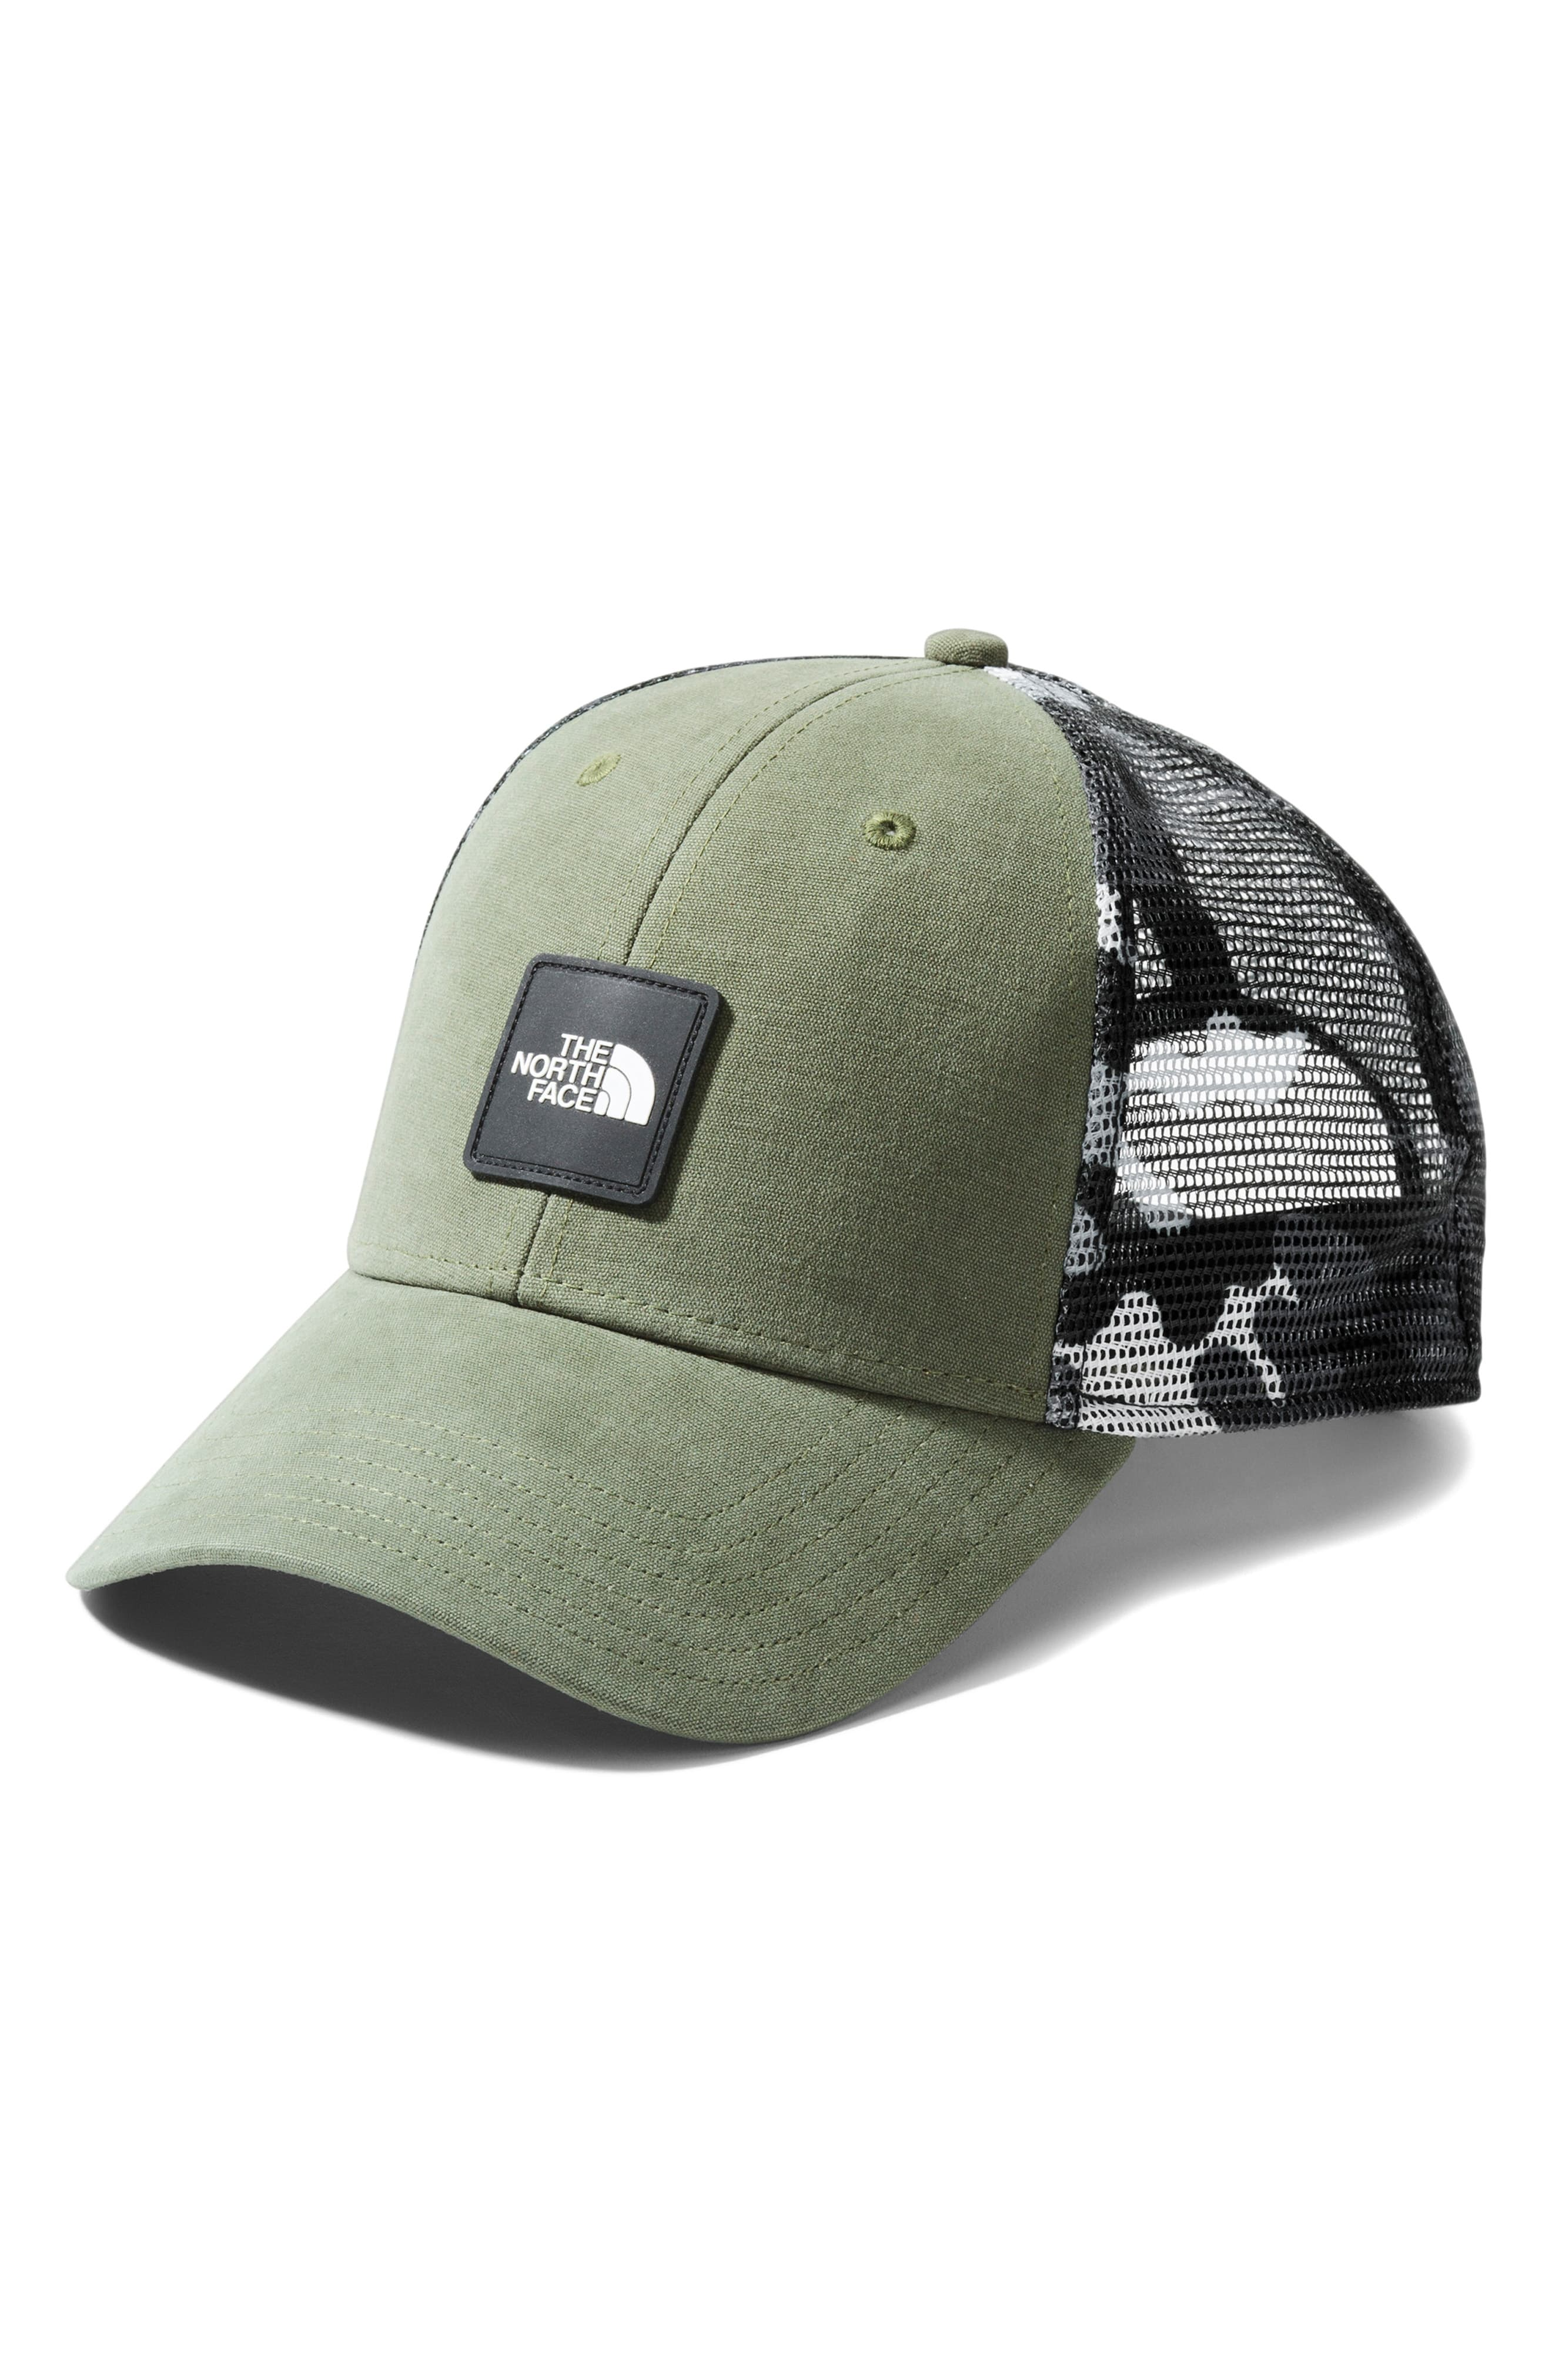 0336ae8b82c709 Men's The North Face Mudder Trucker Cap - Beige in 2019 | Products ...